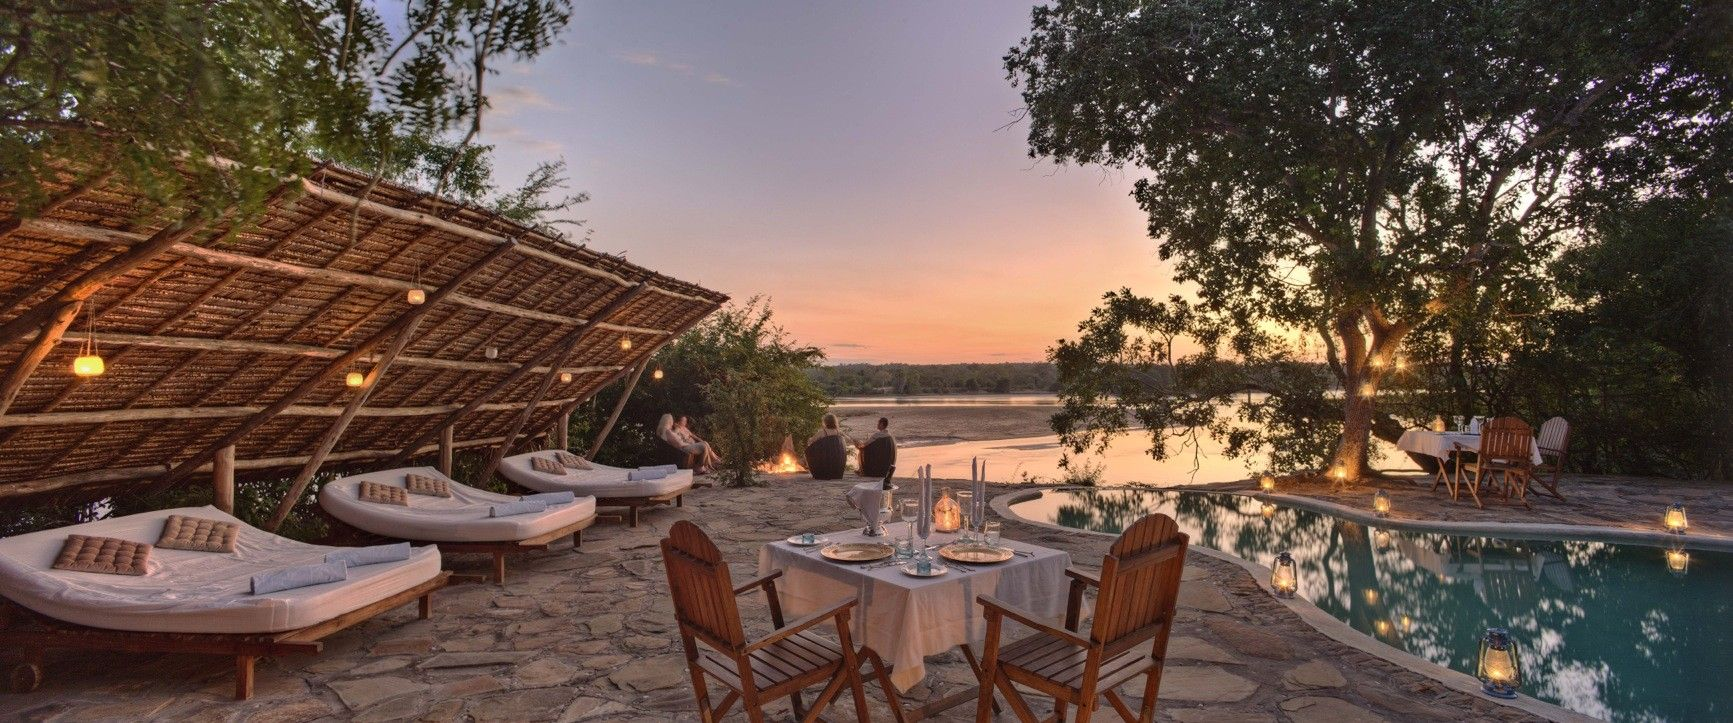 The Retreat is located inside Tanzania's Selous Game